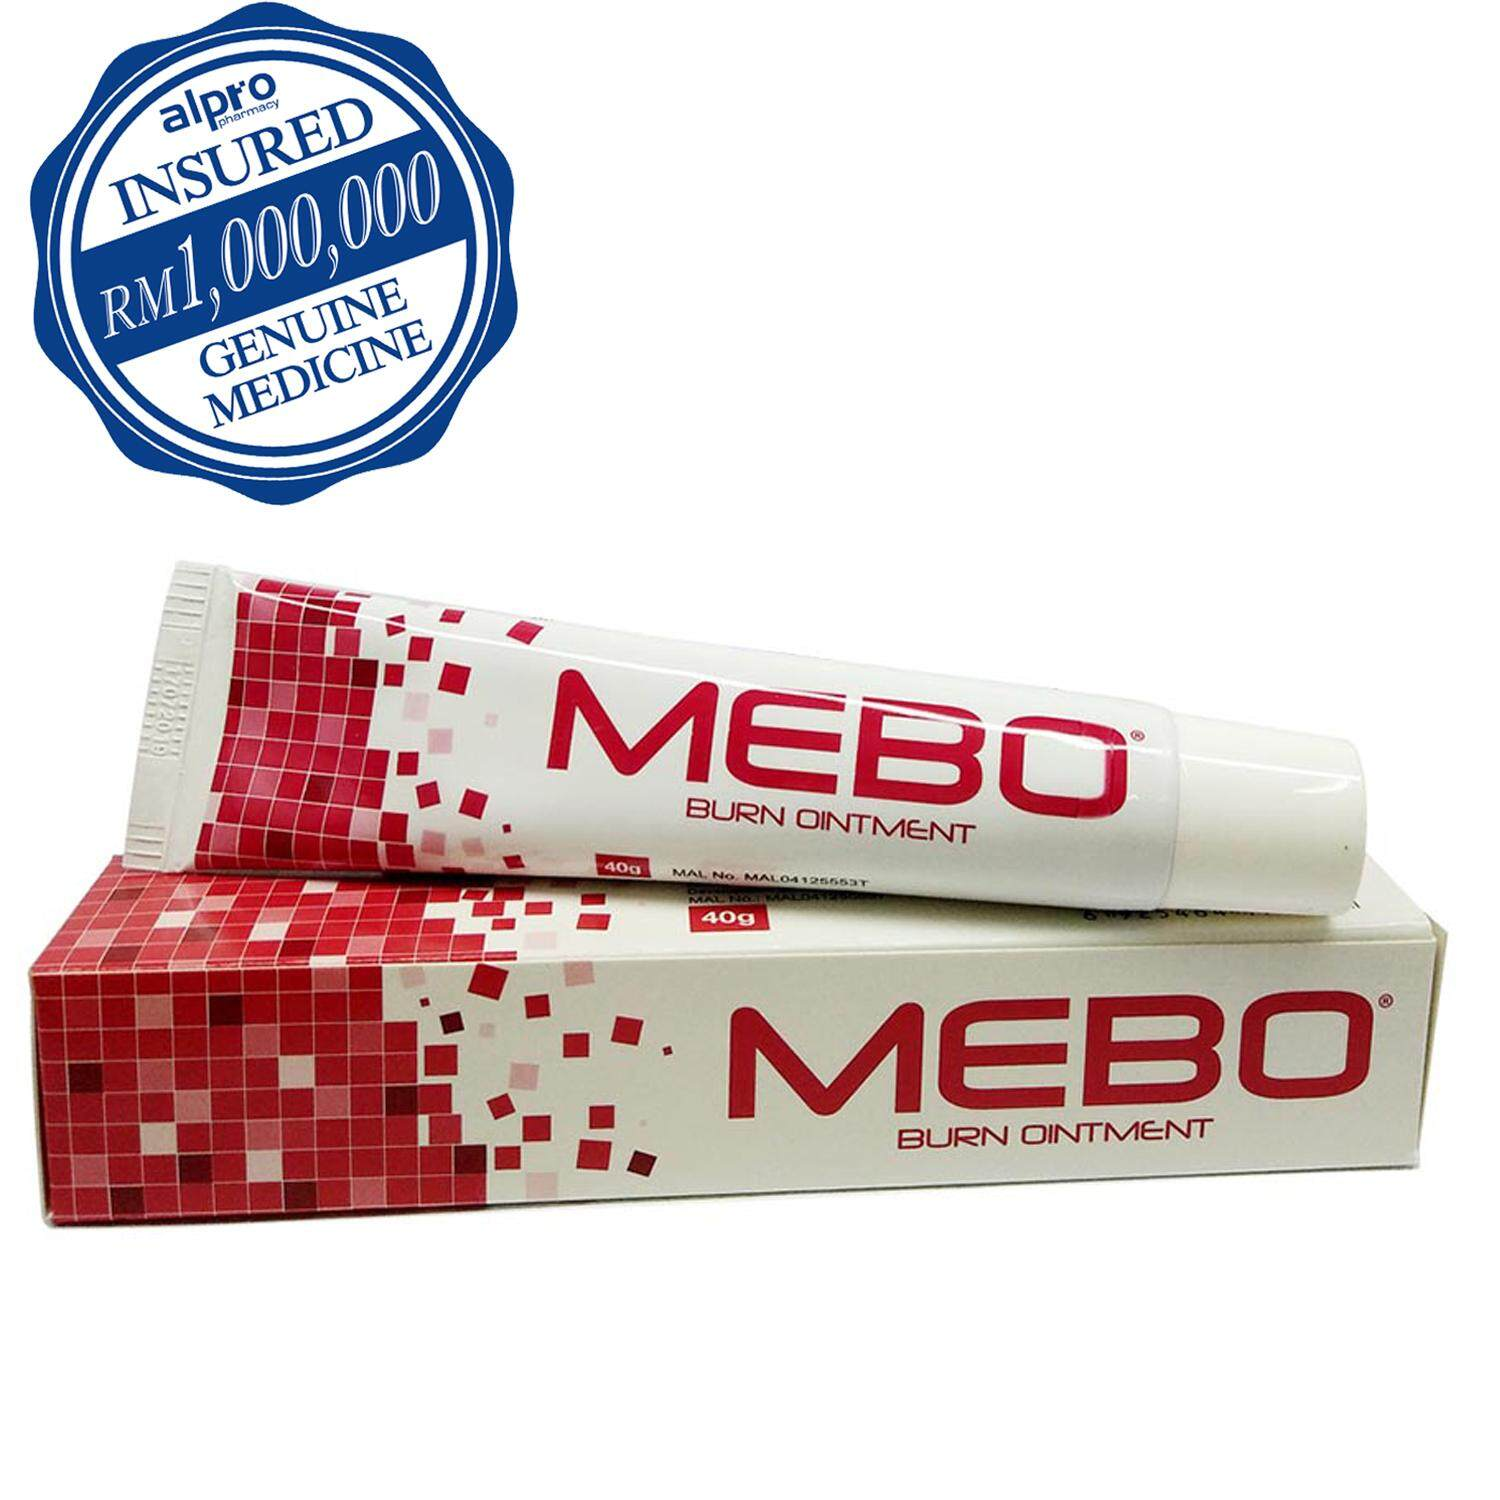 Mebo Burnt Ointment 40g By Alpro Pharmacy.